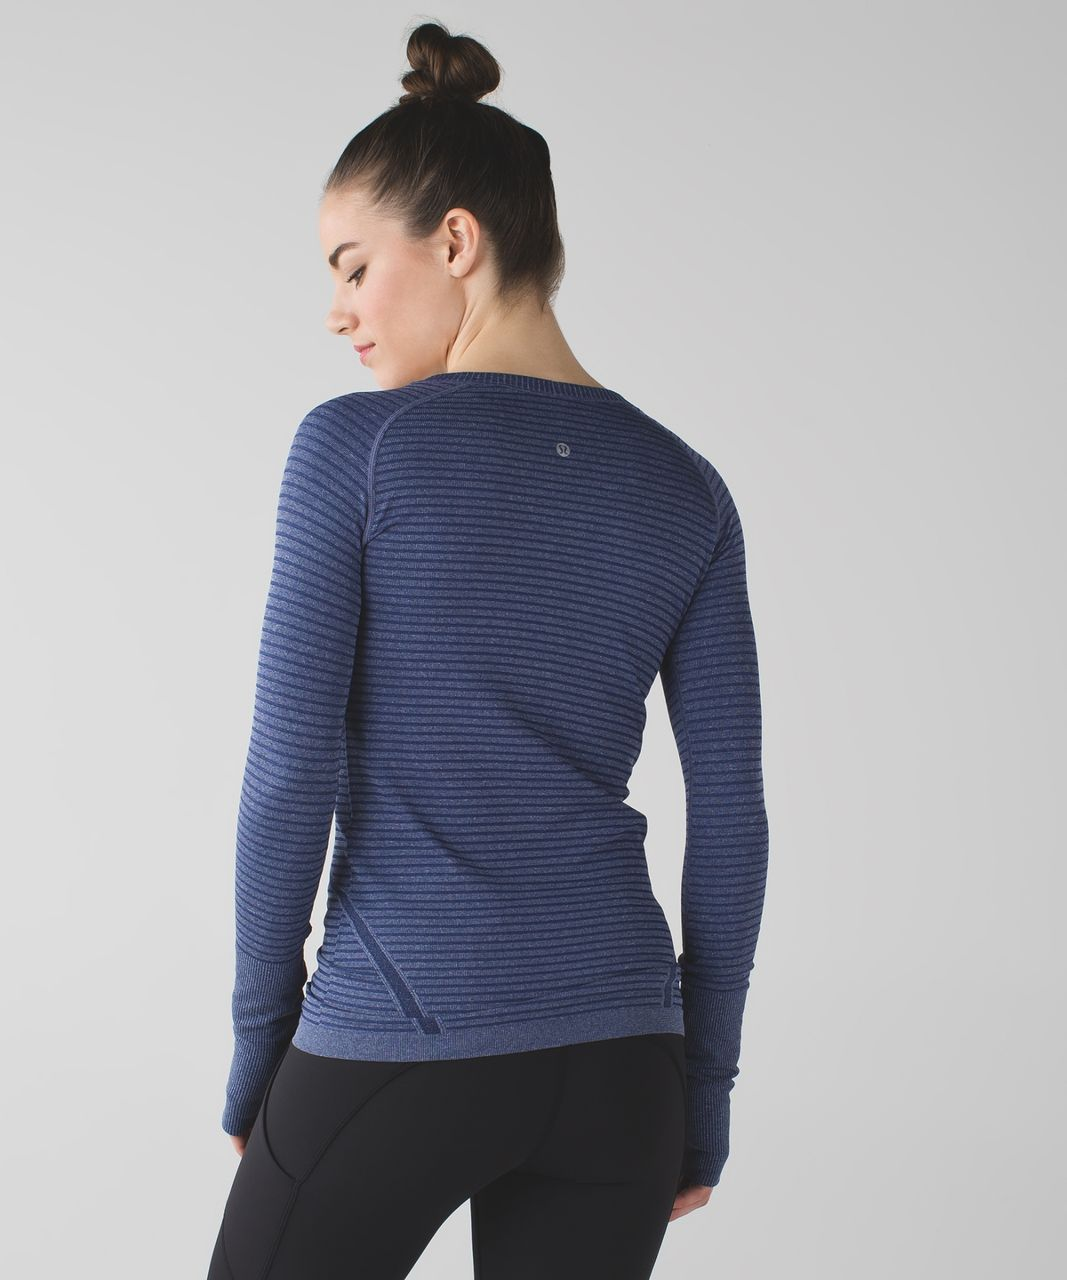 Lululemon Swiftly Tech Long Sleeve Crew - Heathered Hero Blue